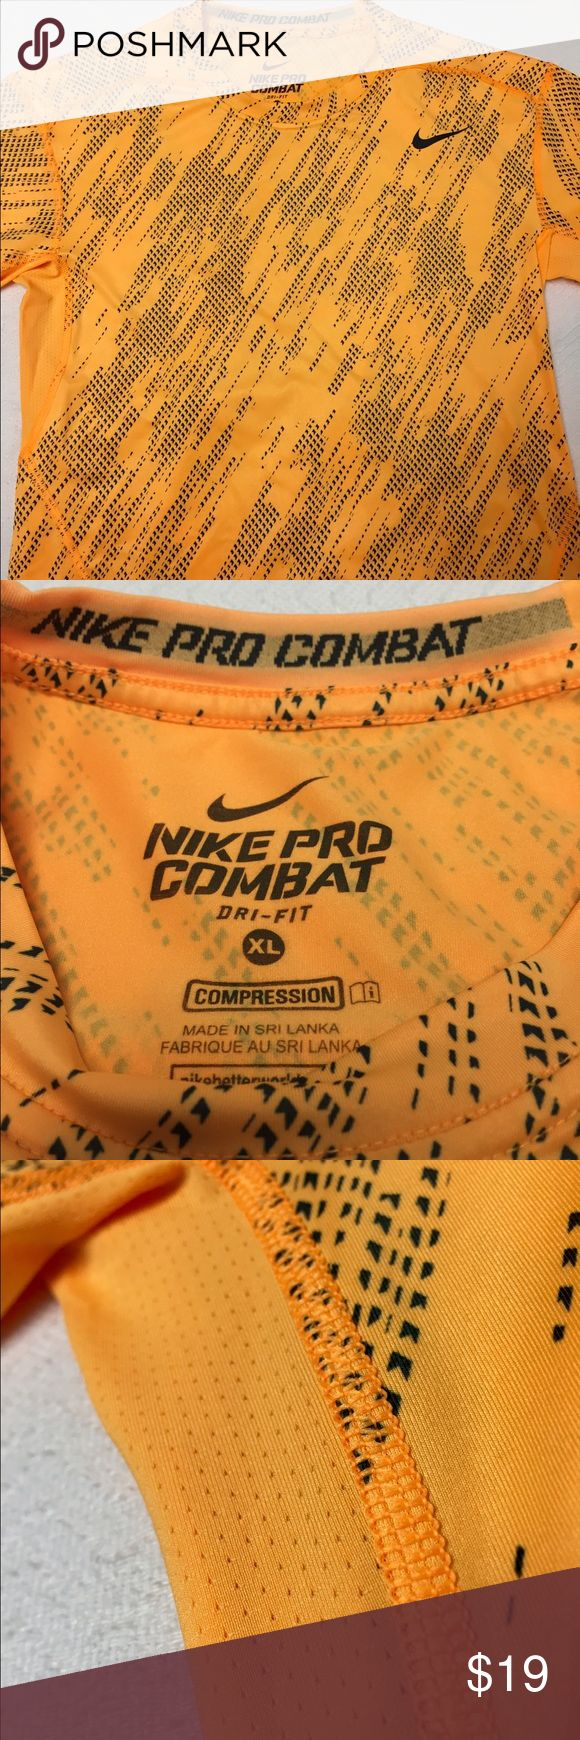 *SOLD*Mens Nike Pro Combat Compression shirt S Tried on once. Basically brand new. XL Compression is basically a Small or very fitted Medium, depending on how you like to wear your workout shirts. Very nice mesh fabric on sides for breathability. Retails at $65. Nike Shirts